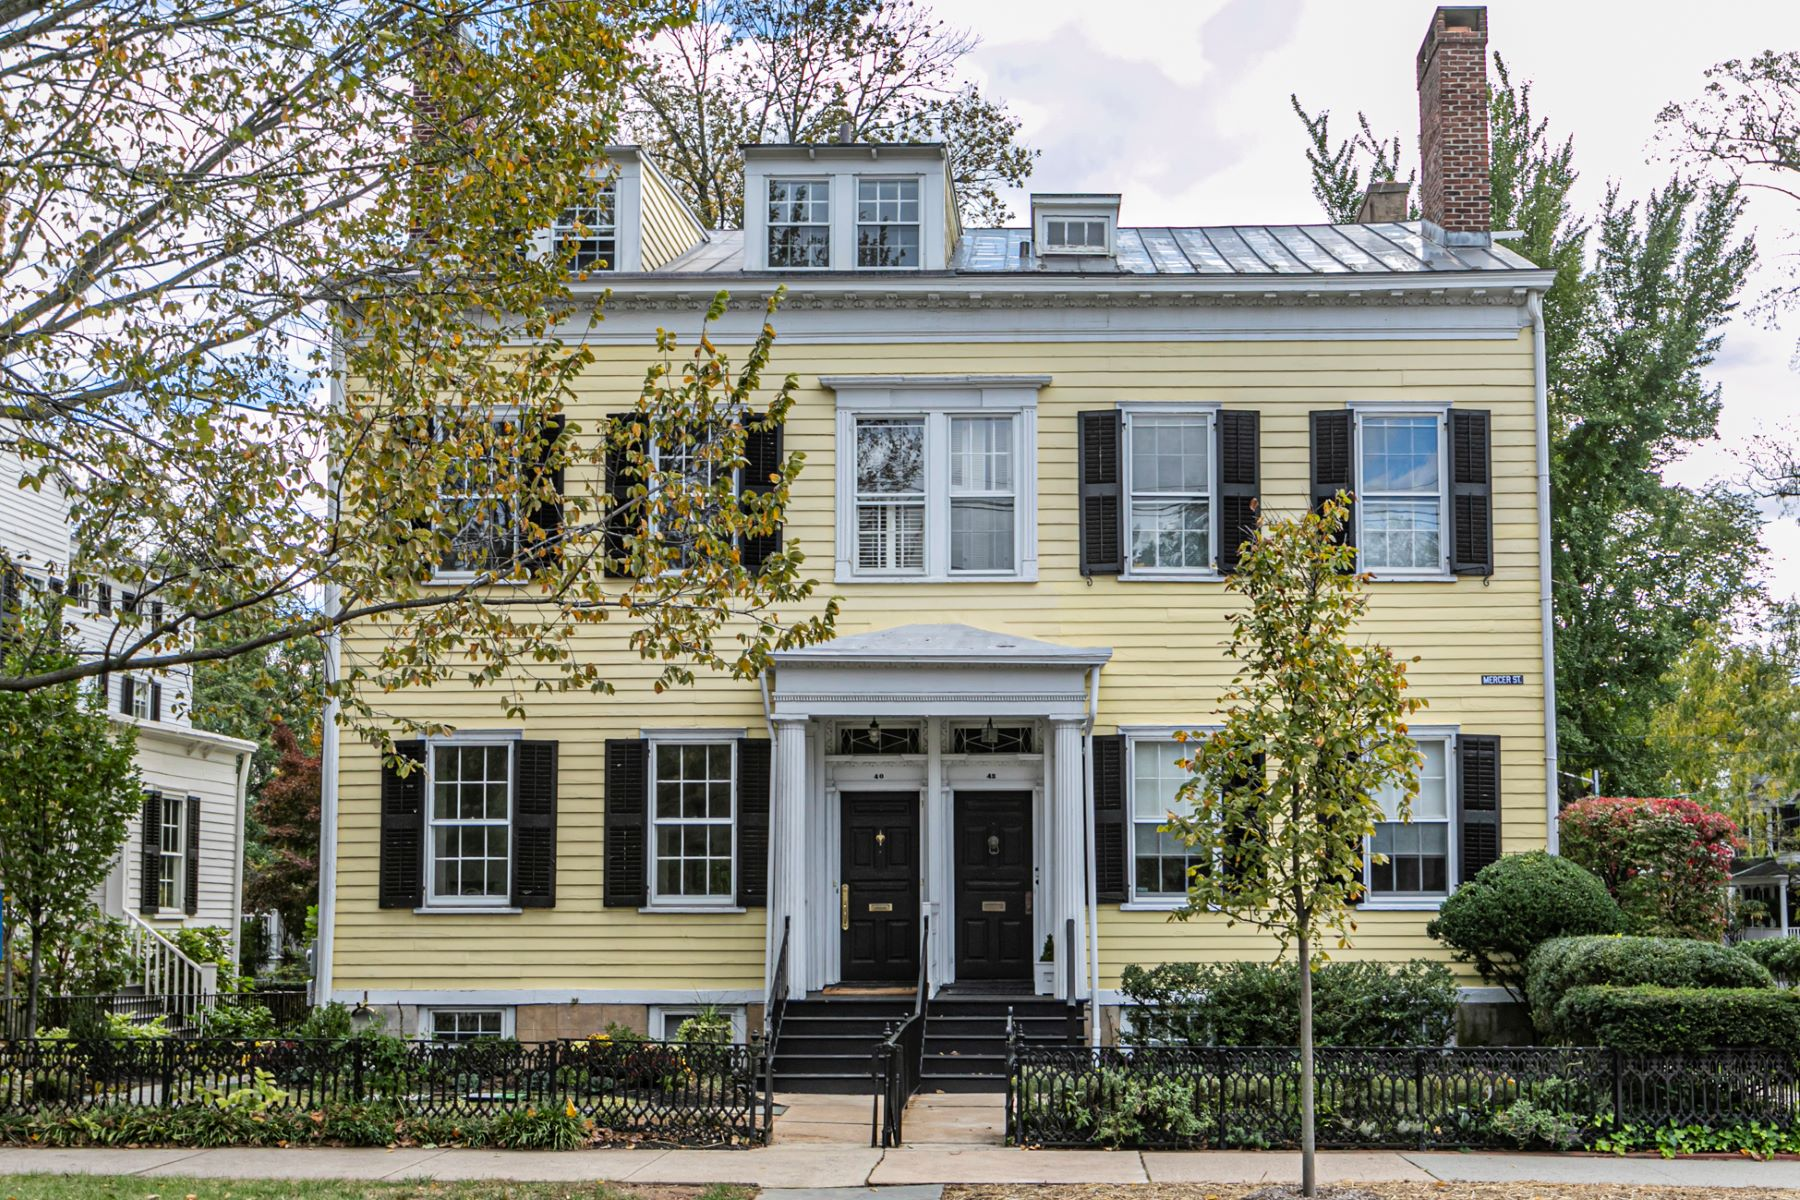 Duplex Homes のために 売買 アット Newly Renovated 1825 Gem, Right in Town 40 Mercer Street, Princeton, ニュージャージー 08540 アメリカ